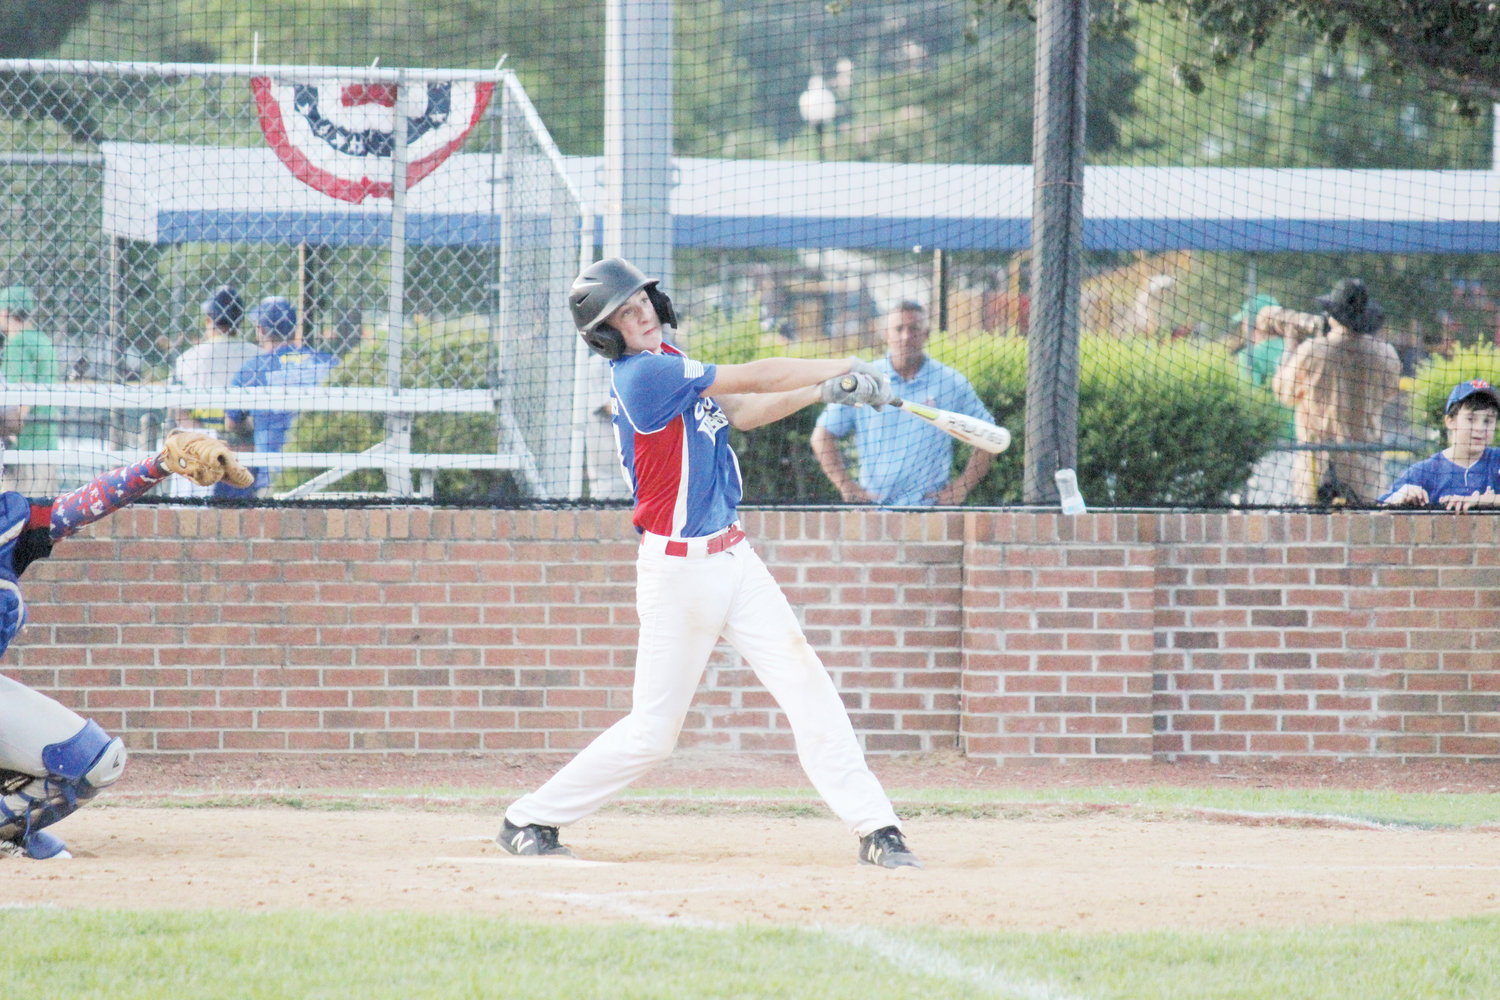 Carter Daughtry smacks a double in Erwin's 6-4 win over Louisburg in the Tar Heel Leagues 15-and-under Baseball State Tournament.